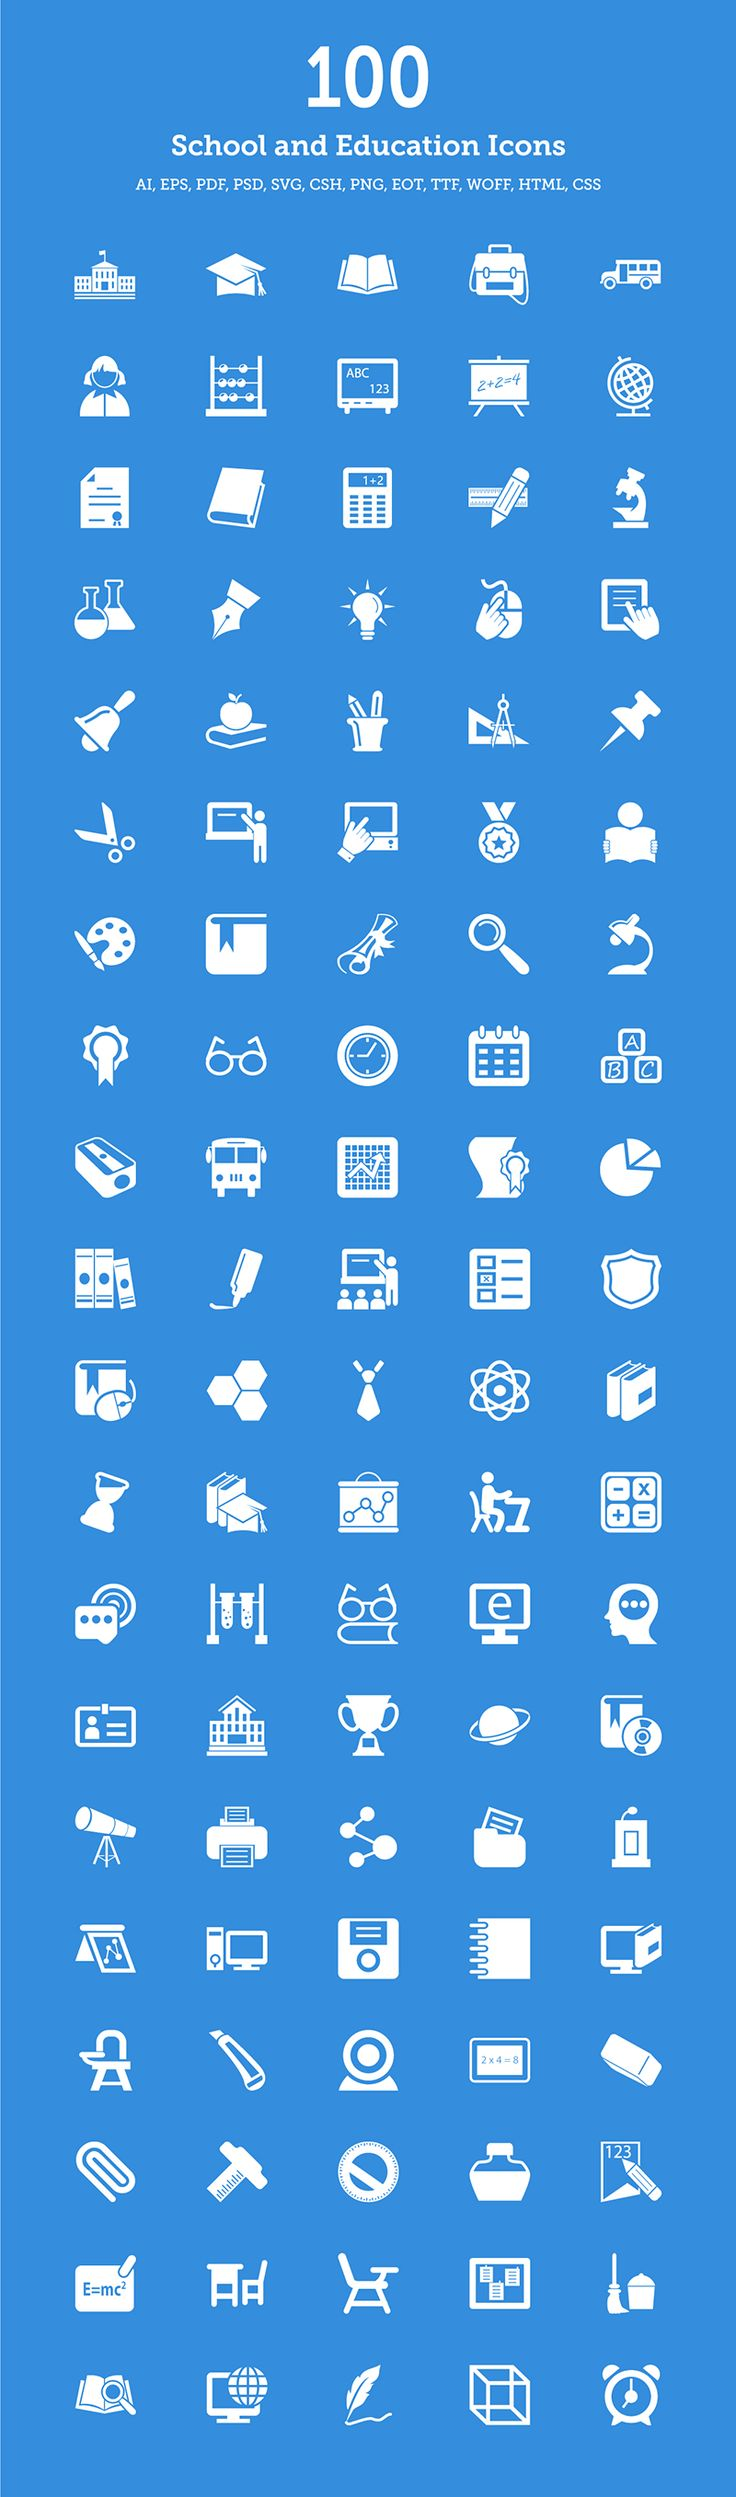 100 School & Education Icons